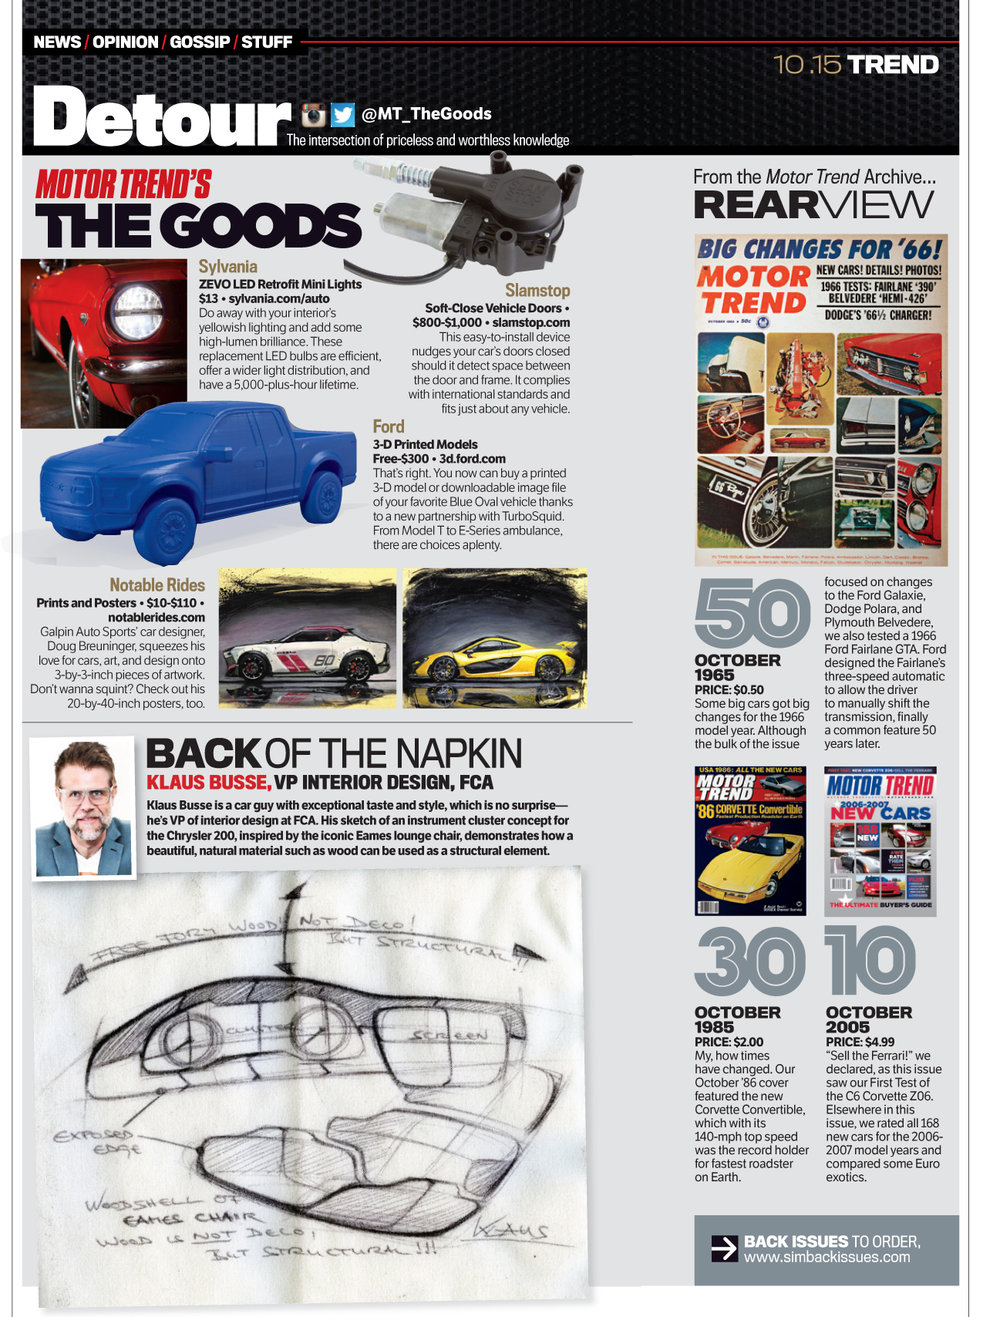 Notable Rides featured in MOTOR TREND (THE GOODS) magazine October 2015